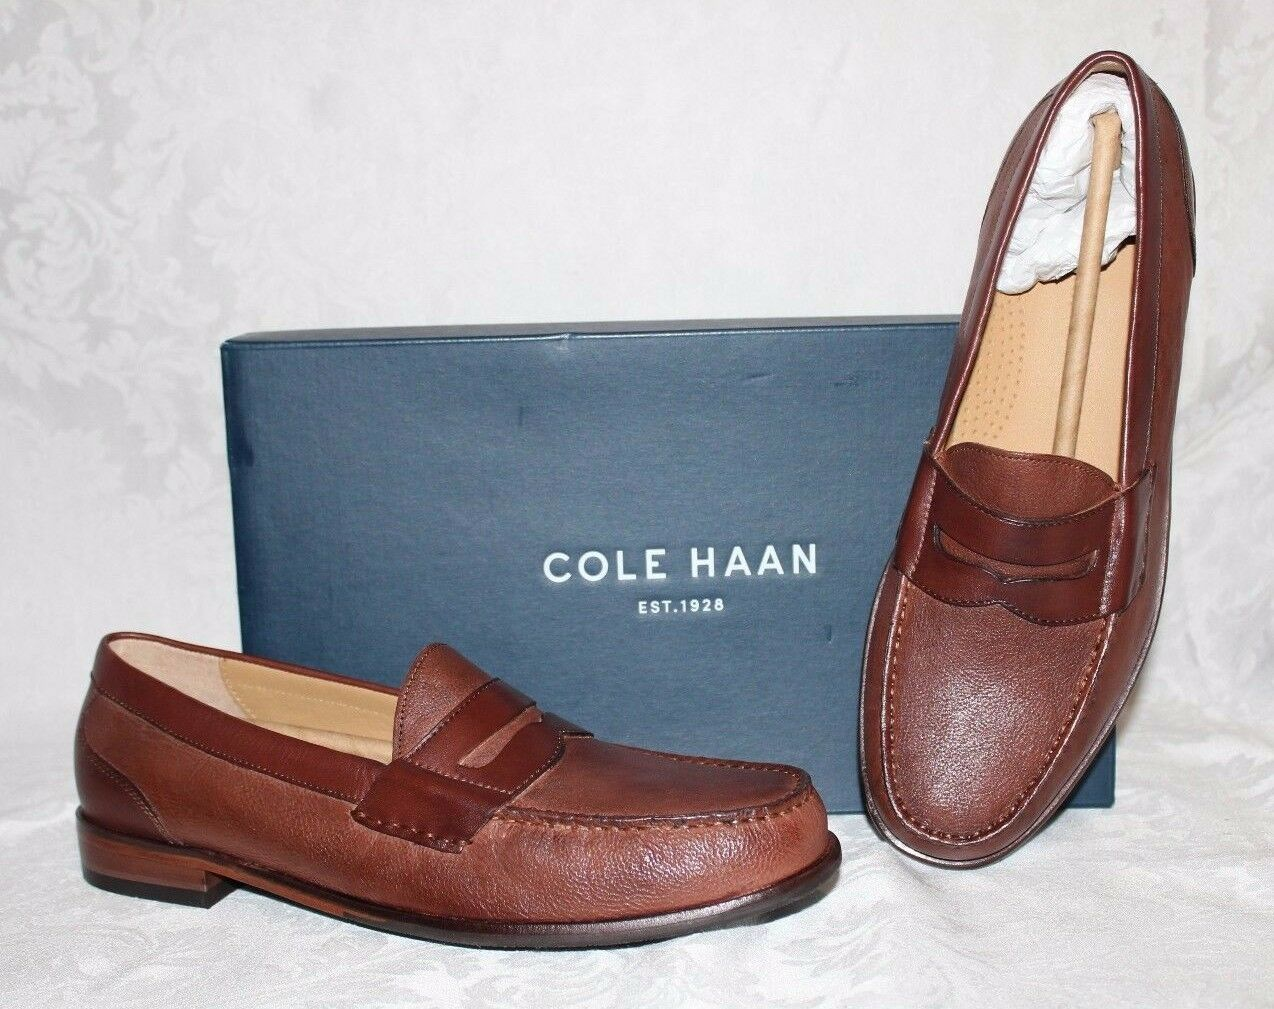 NEW COLE HAAN MENS FAIRMONT II PENNY LOAFERS sz 10-1 2 Medium